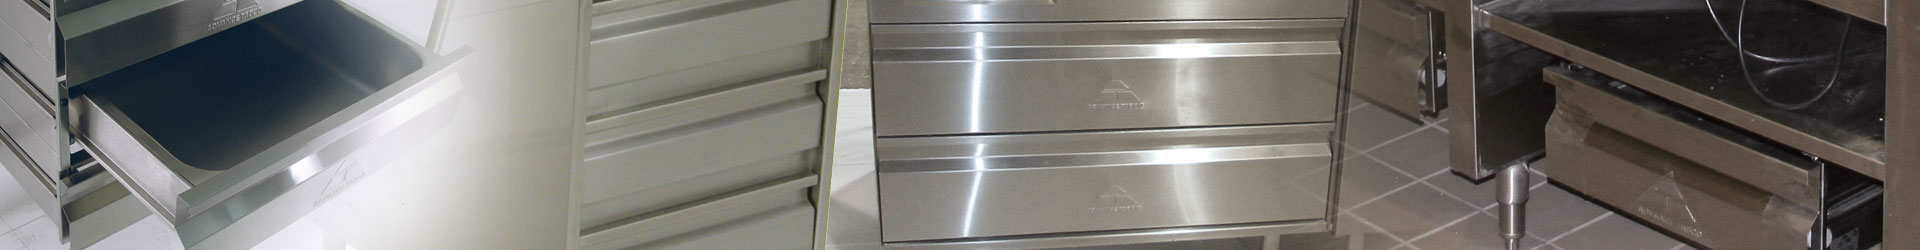 Advance Tabco Stainless Steel Drawers